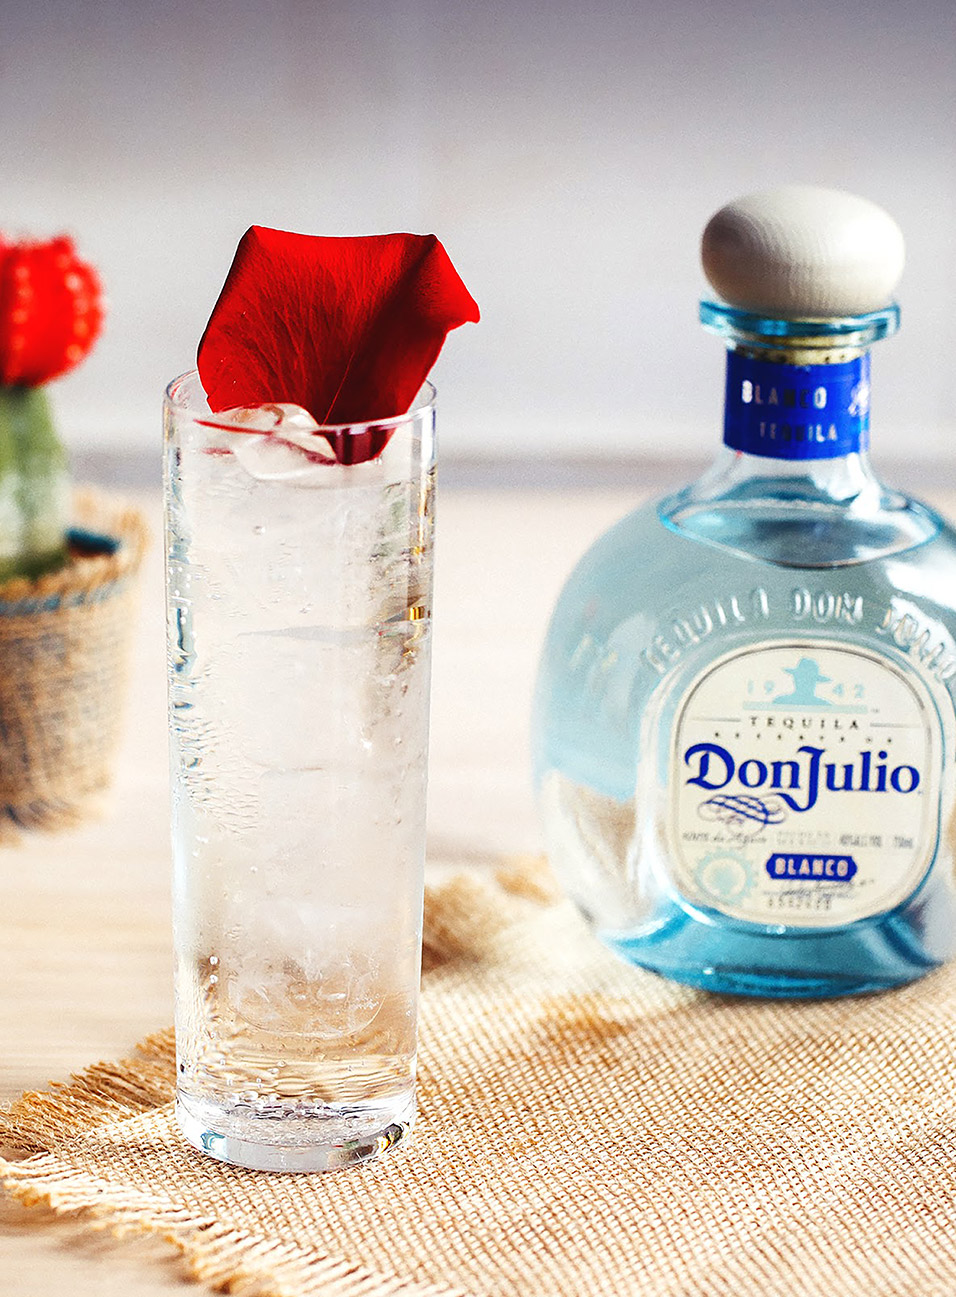 Rose Quartz cocktail made with Don Julio Blanco Tequila